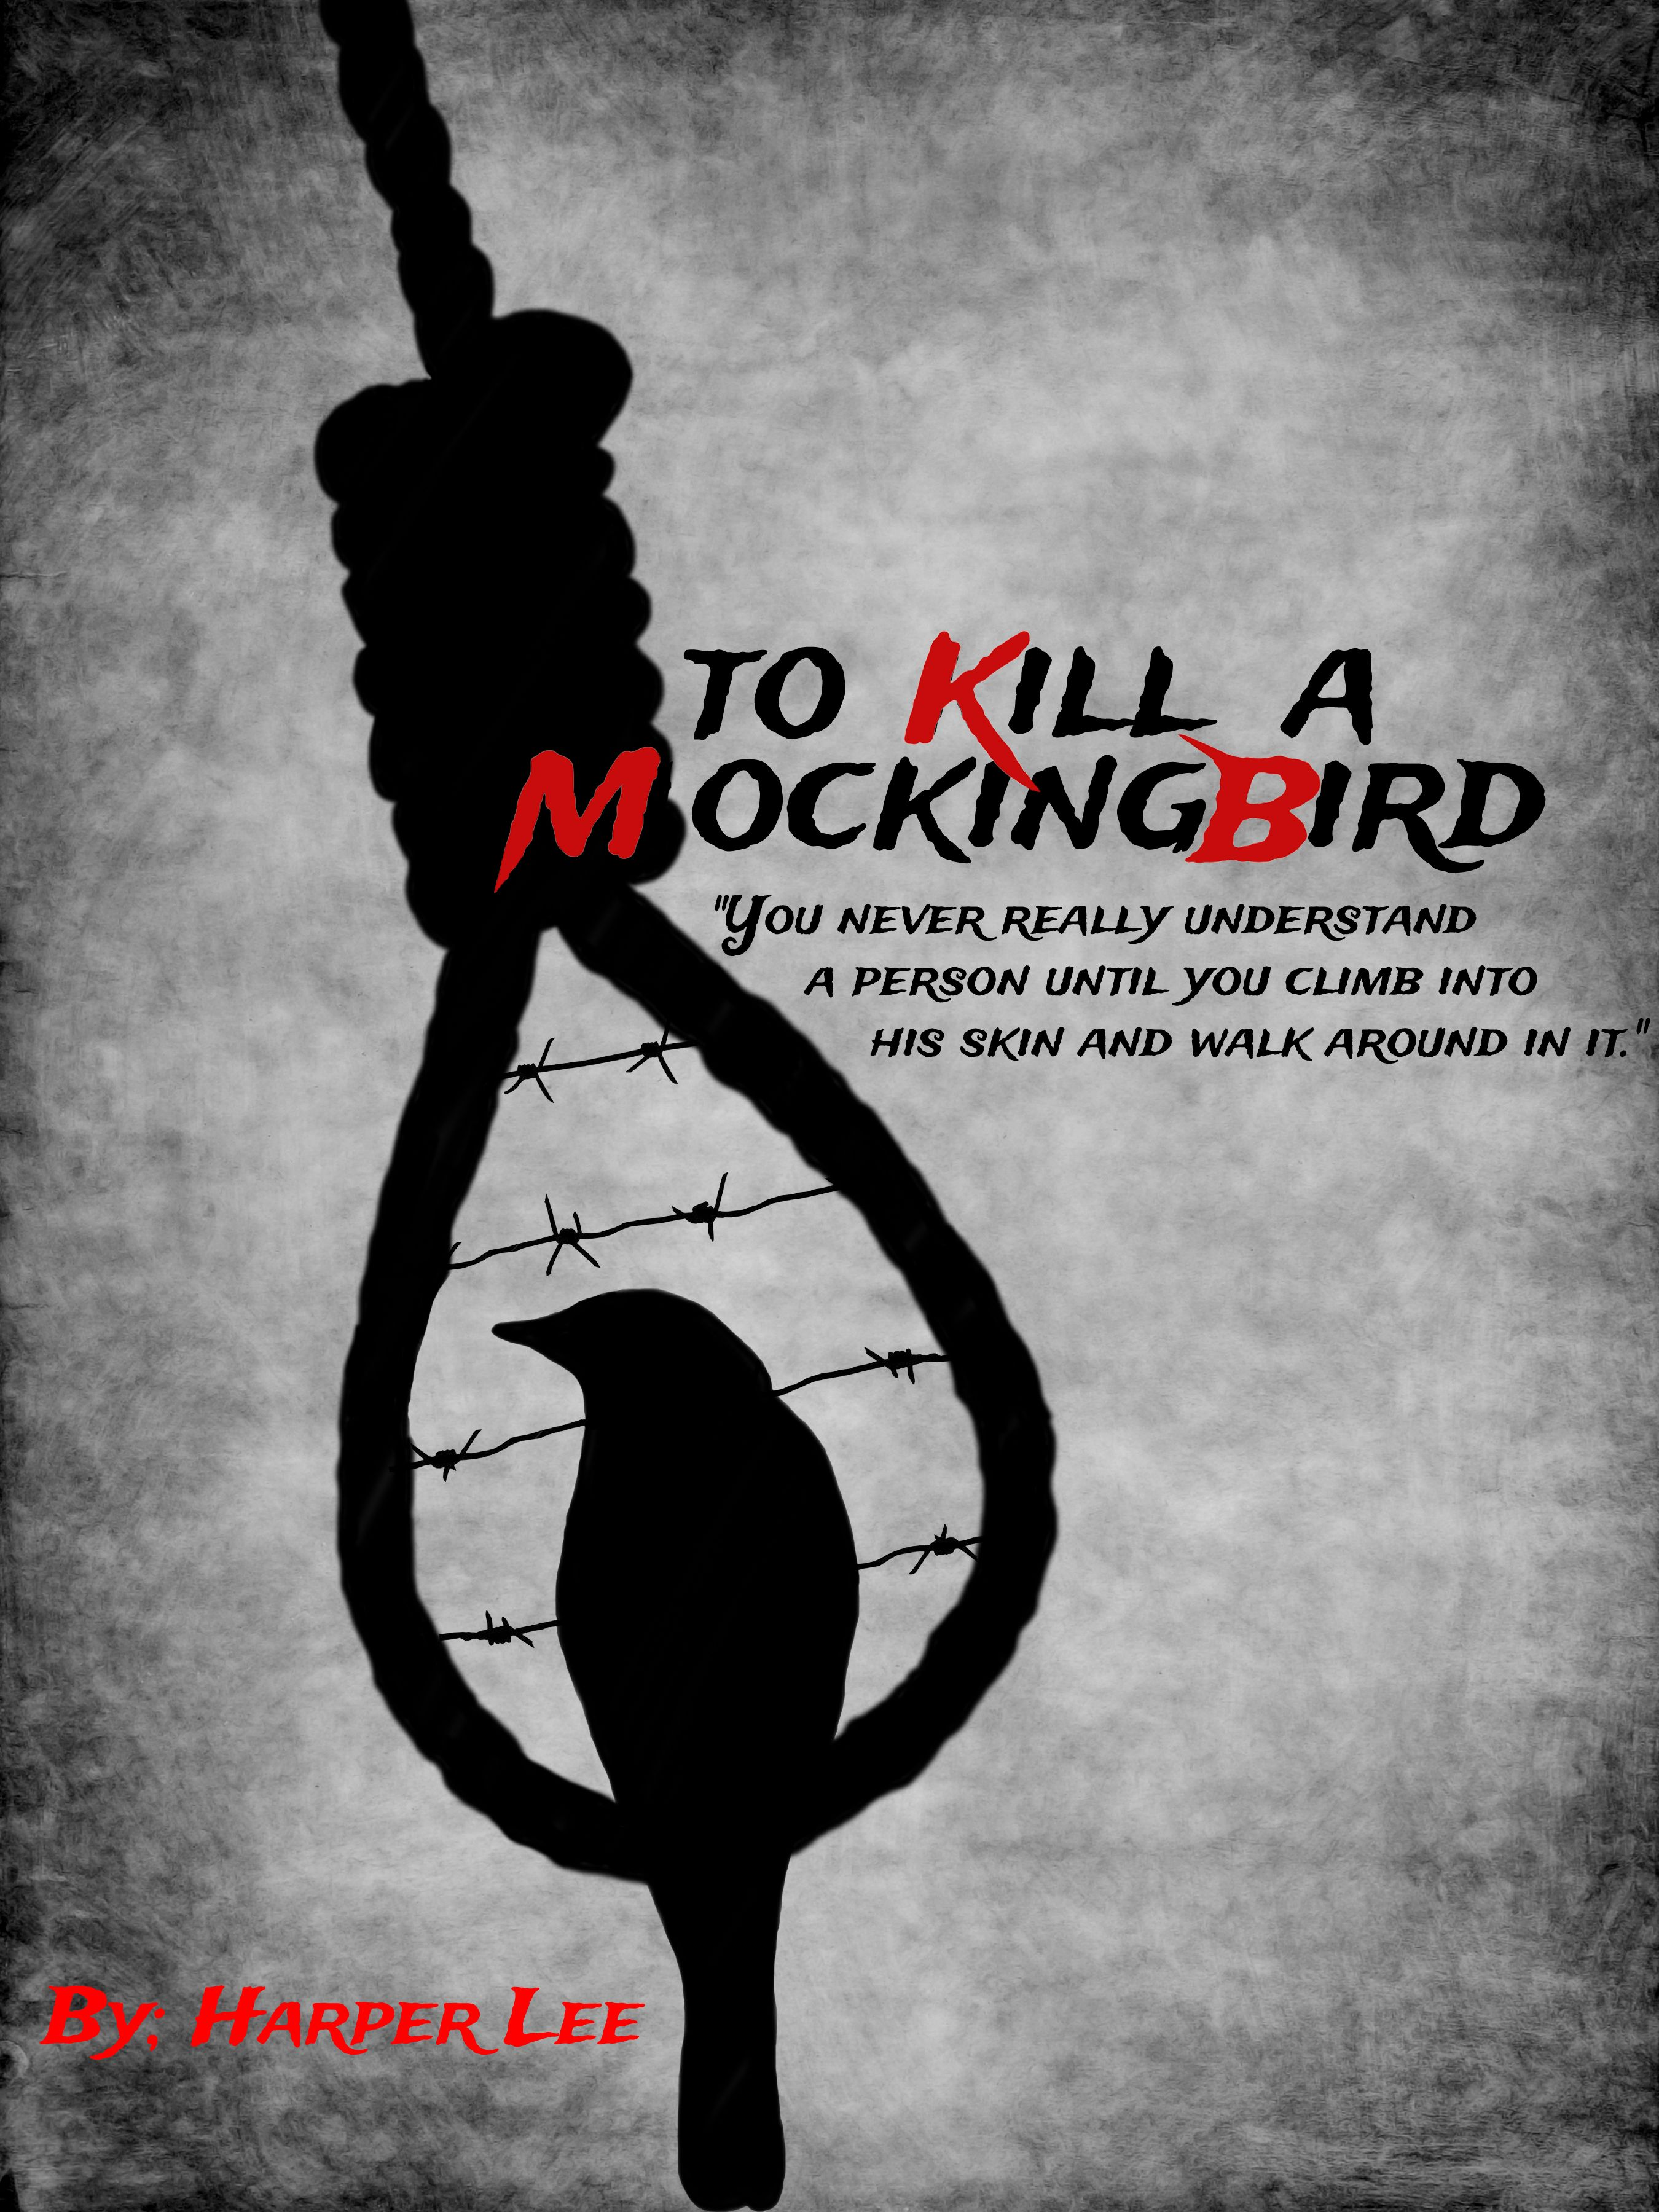 to kill a mockingbird essay mockingbirds Freshman english i – to kill a mockingbird essay – directions: write a 4-6 page (1000-1500+ word) essay, typed and double-spaced, on one of the following topics dealing with harper lee's novel, to kill a mockingbird (1960).